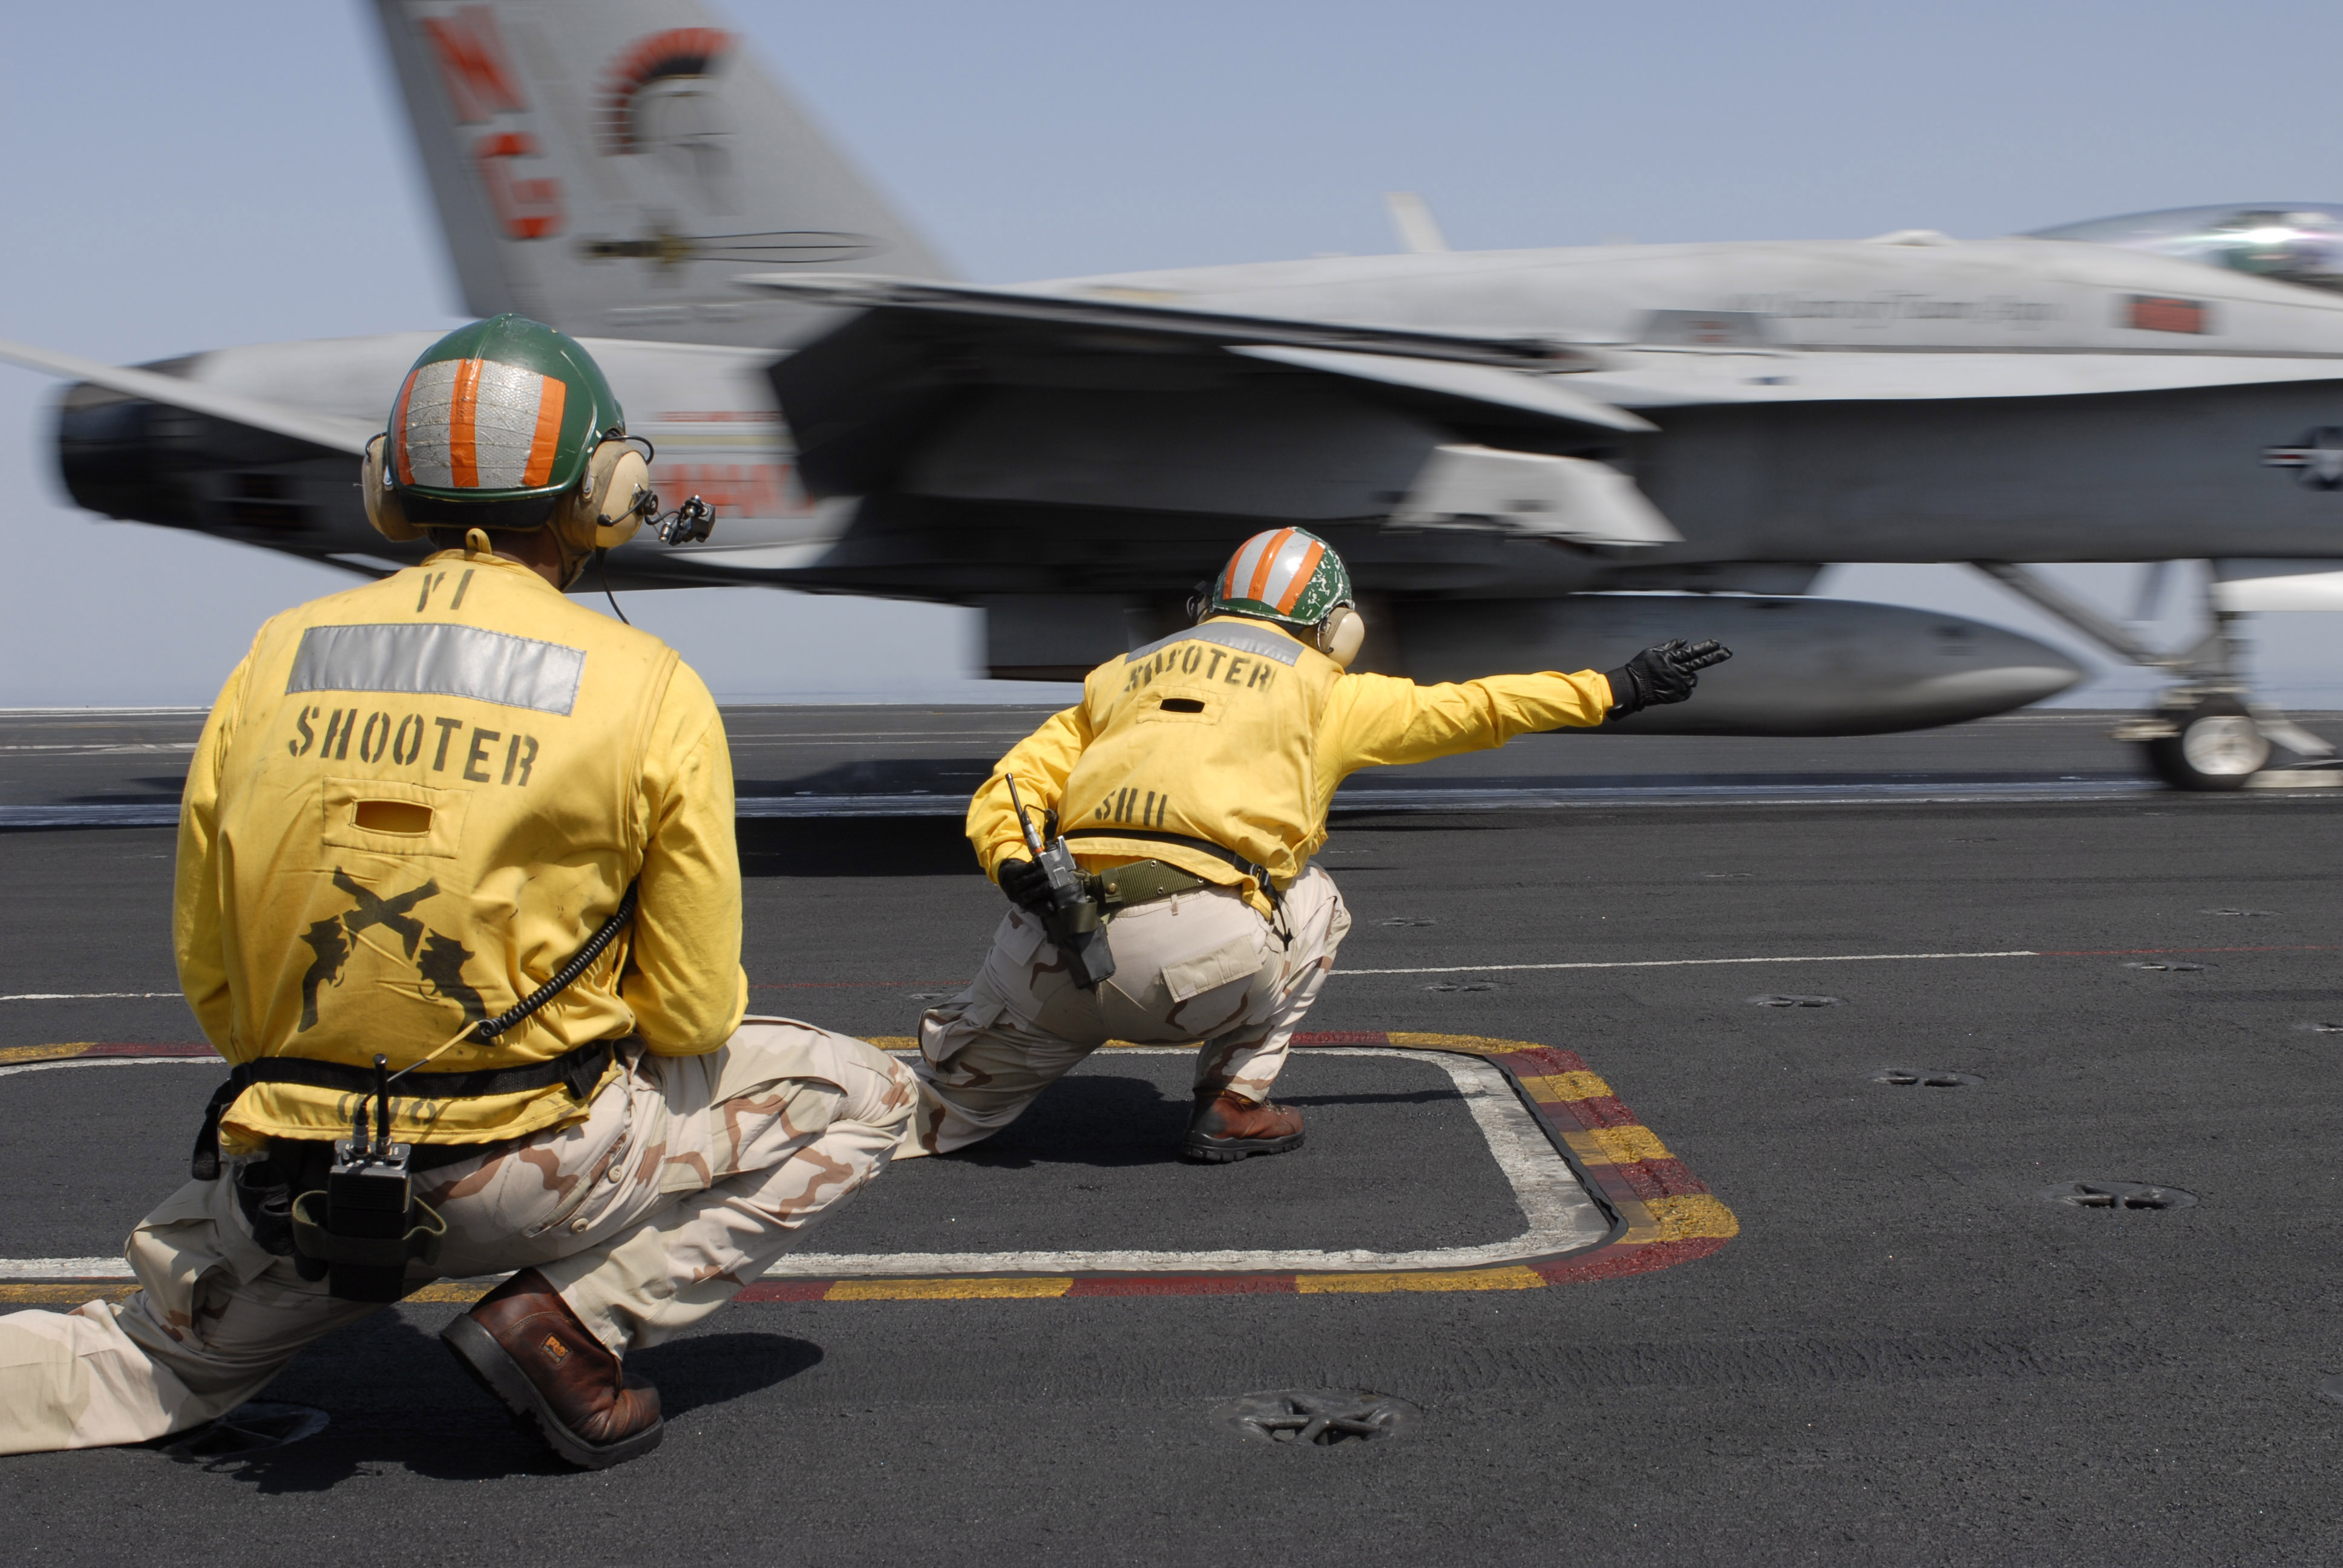 helicopter landing officer with File Us Navy 070313 N 8157c 001 Flight Deck Officers  Referred To As Shooters  Launch An F A 18c Hor  Assigned The Argonauts Of Strike Fighter Squadron  Vfa  146 Off The Flight Deck Of Nimitz Class Aircraft Carrier Uss John C  Ste on After Heathrow Crash How Safe IS Planes  puter moreover Aurora Unveils Evtol Aircraft further Helicopter Hand Signals wHcAmAWiXjIRPYxfu10VCg 6pZ4LtafTAOAS5R2VZ1E likewise File Airport Traffic Pattern from AIM 4 3 2 moreover Hmas Adelaide Enters Hobart Tasmania.